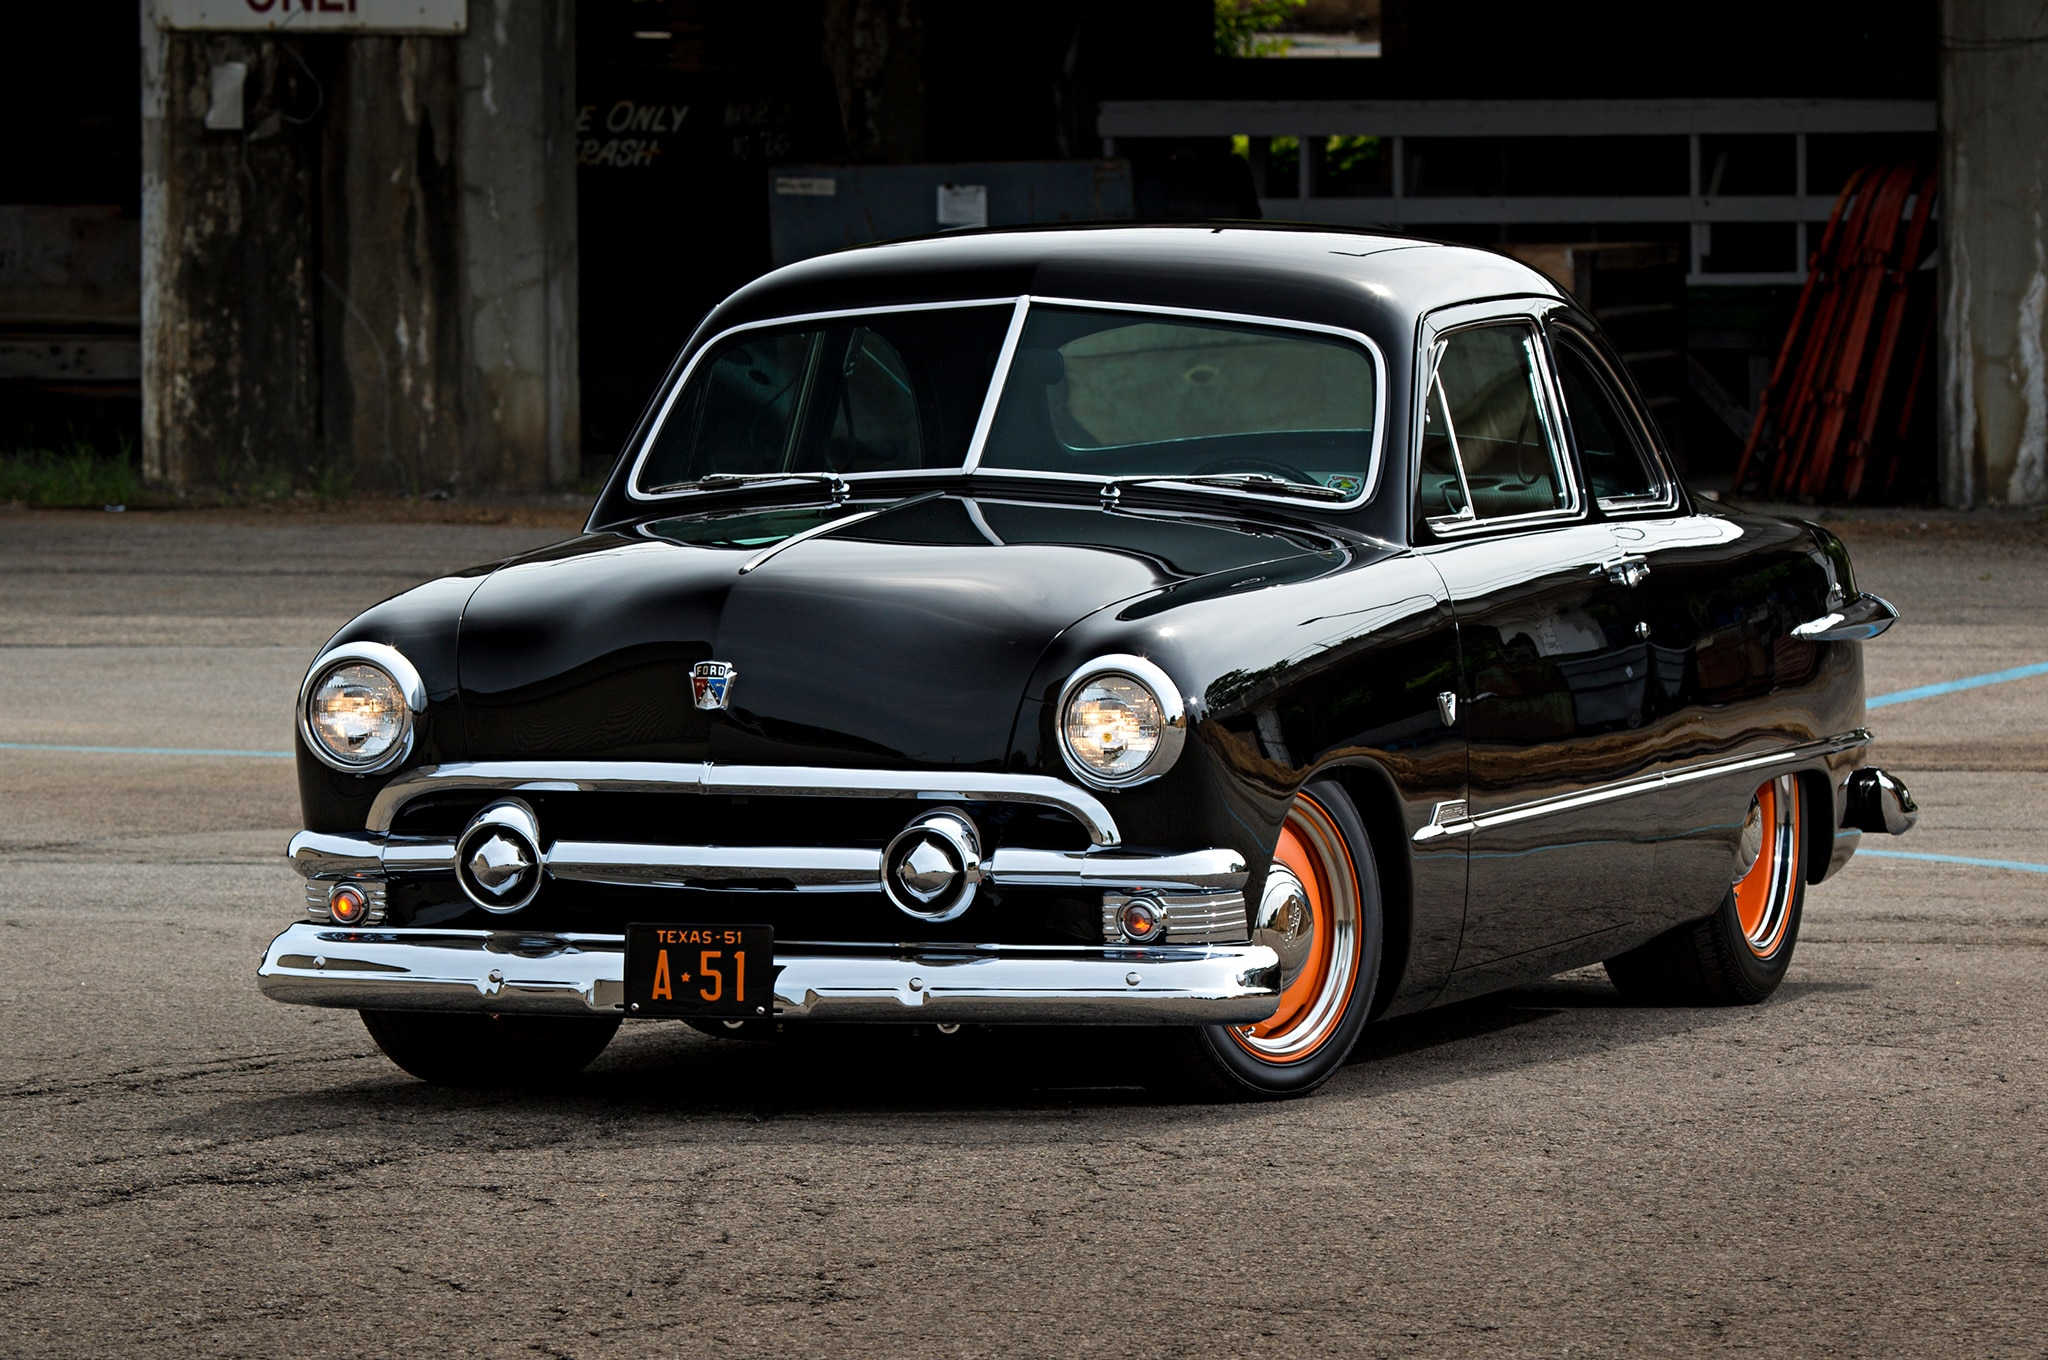 Doyle Thomas' 1951 Ford Club Coupe Is His Latest Car And